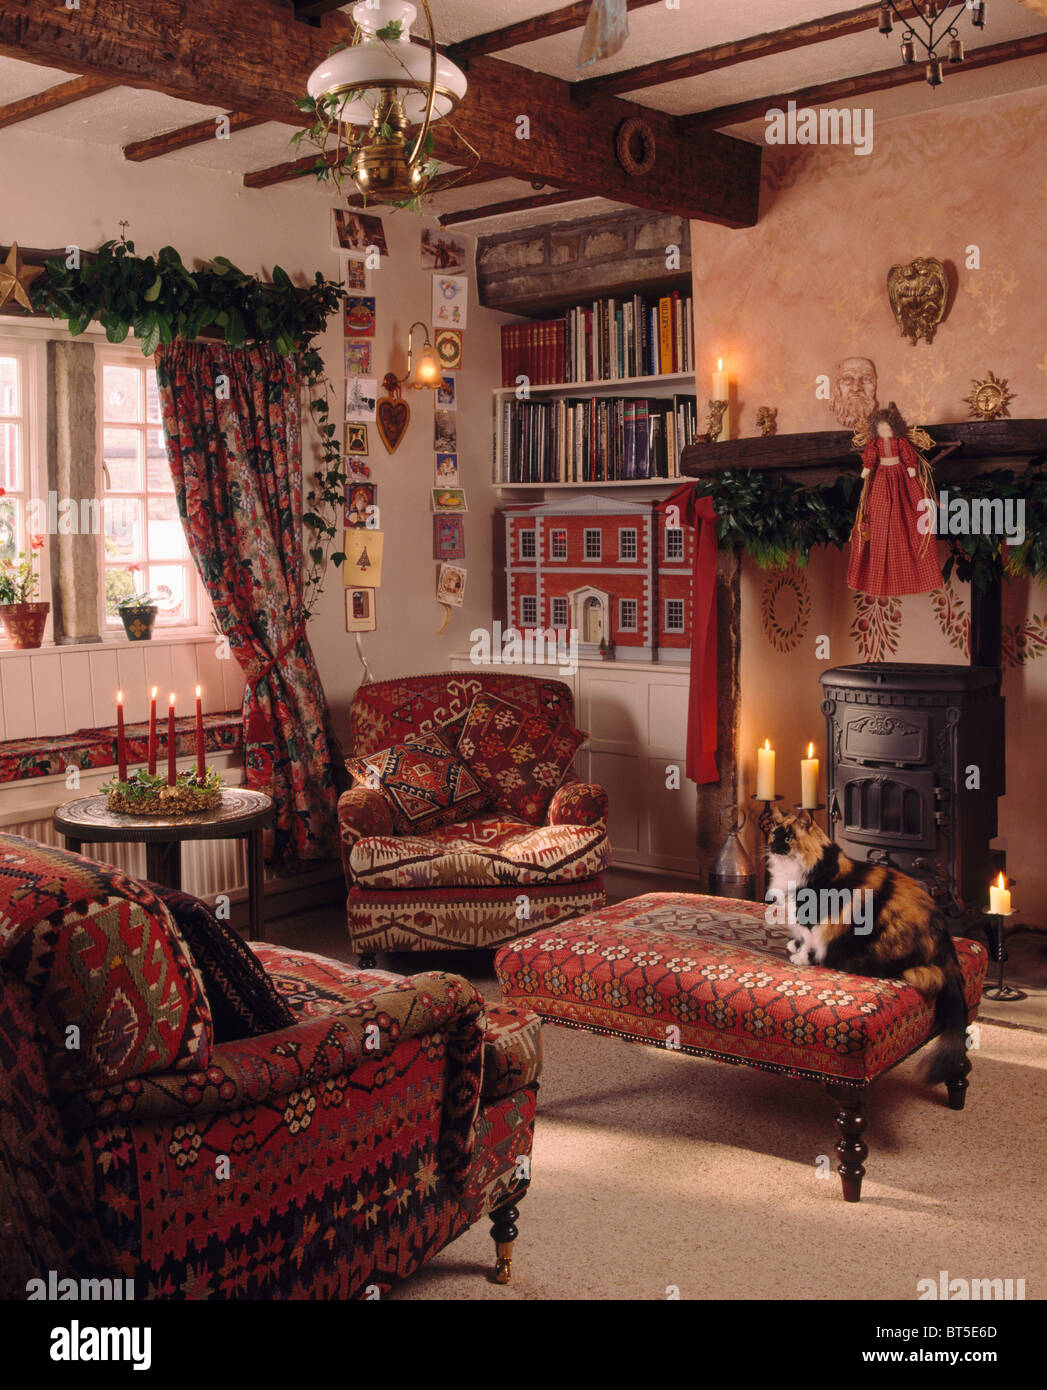 Red Patterned Armchairs And Stool Beside Wood Burning Stove In Cosy Stock Photo Royalty Free Image 32083029 Alamy